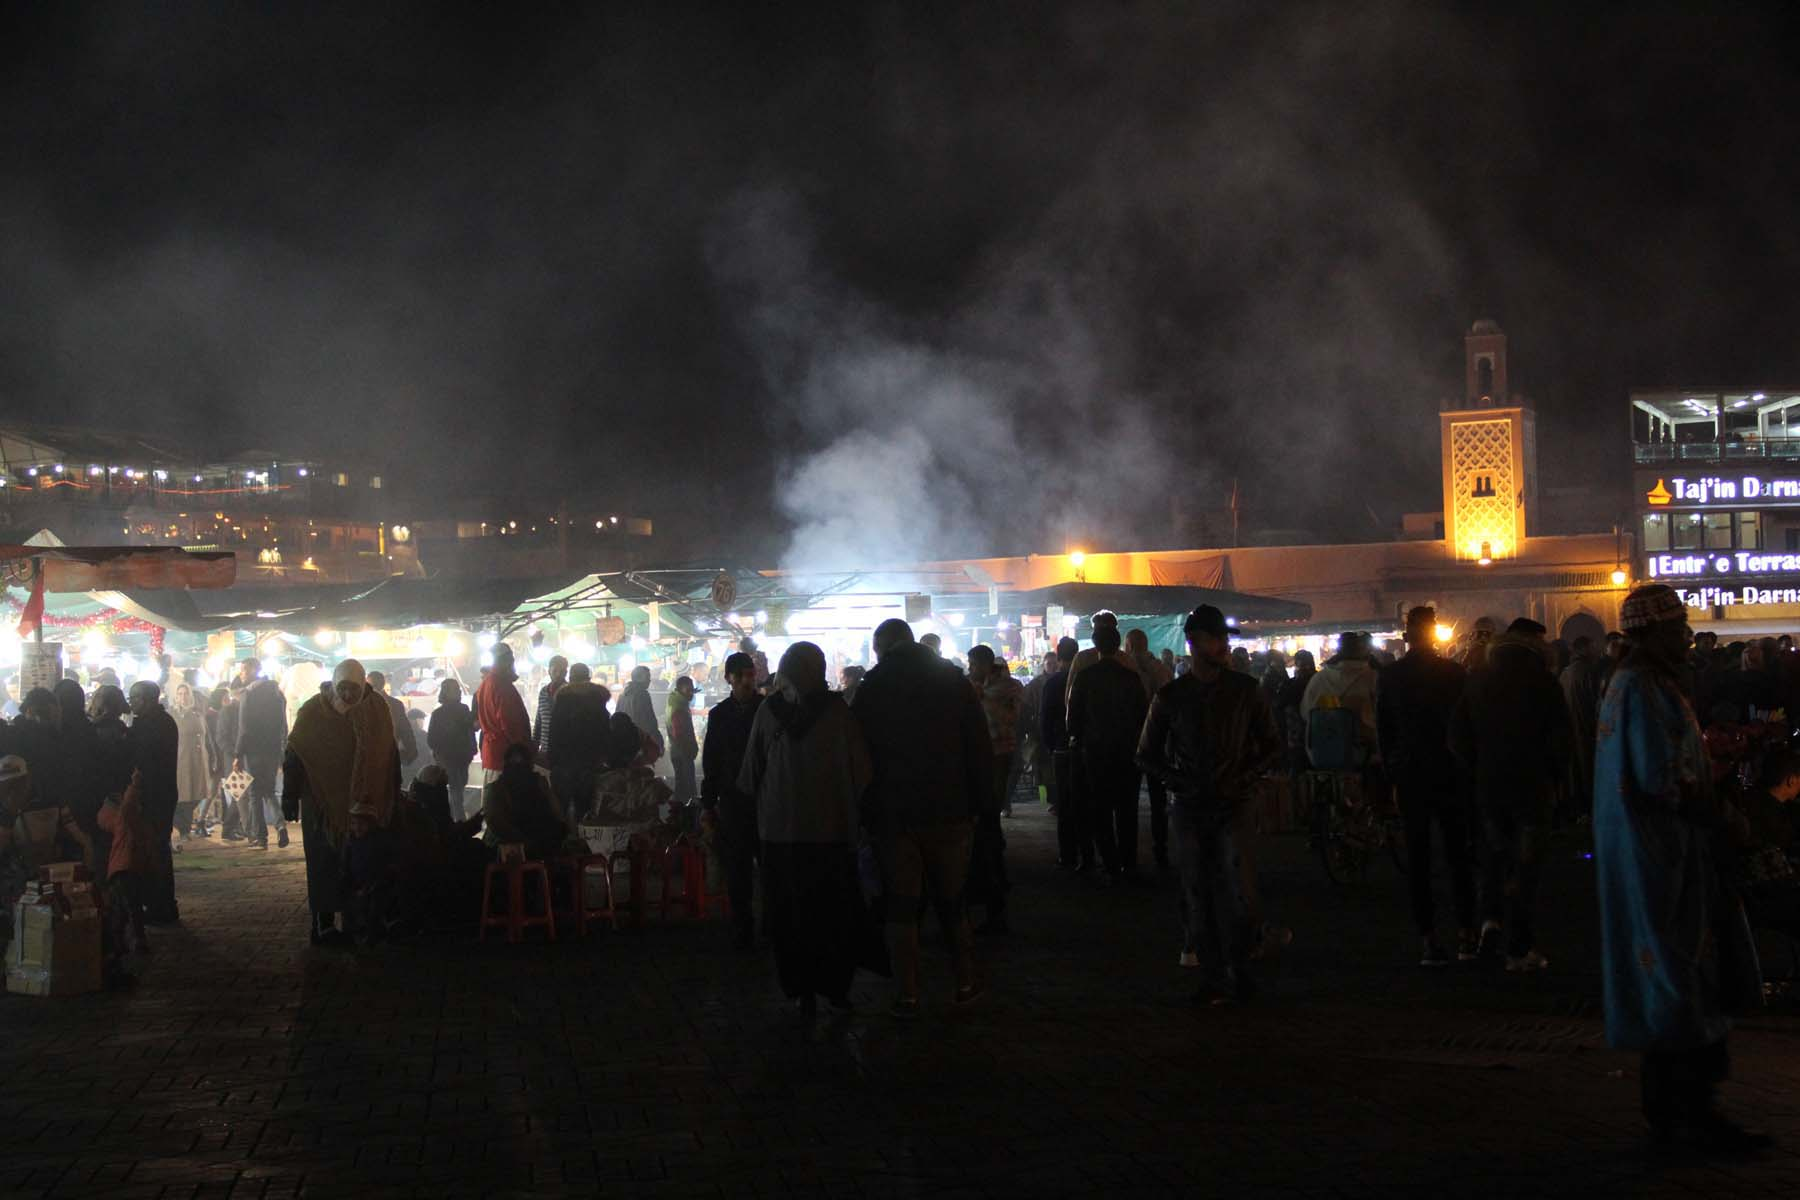 Marrakech's Jemaa el Fnaa square at night